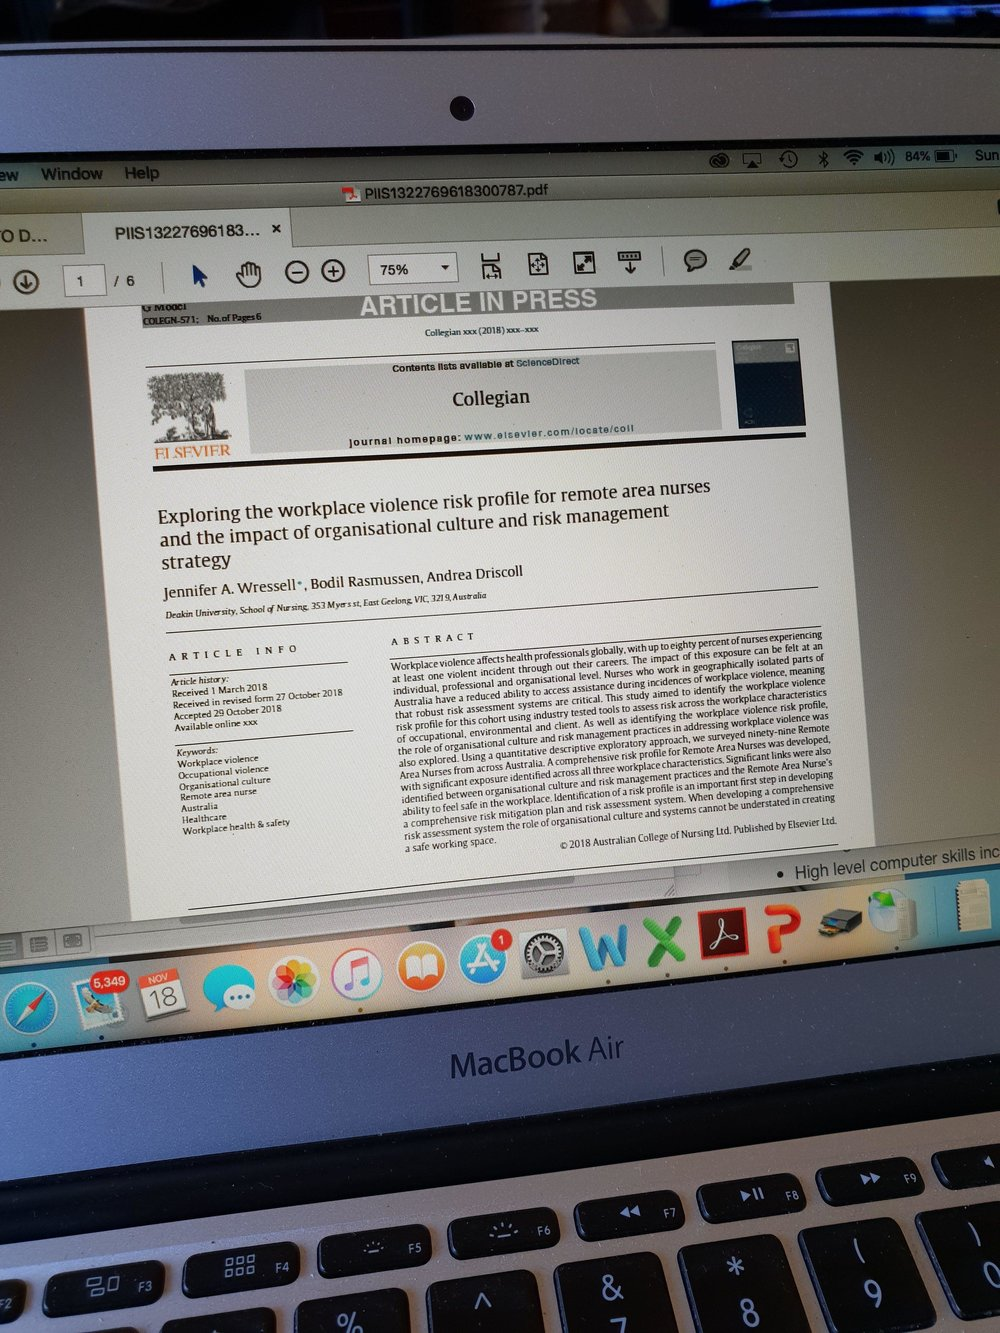 First peer reviewed article published!! - In November, Jen had her first peer reviewed journal article published. On a subject close to our heart at mia, occupational violence and risk factor awareness.